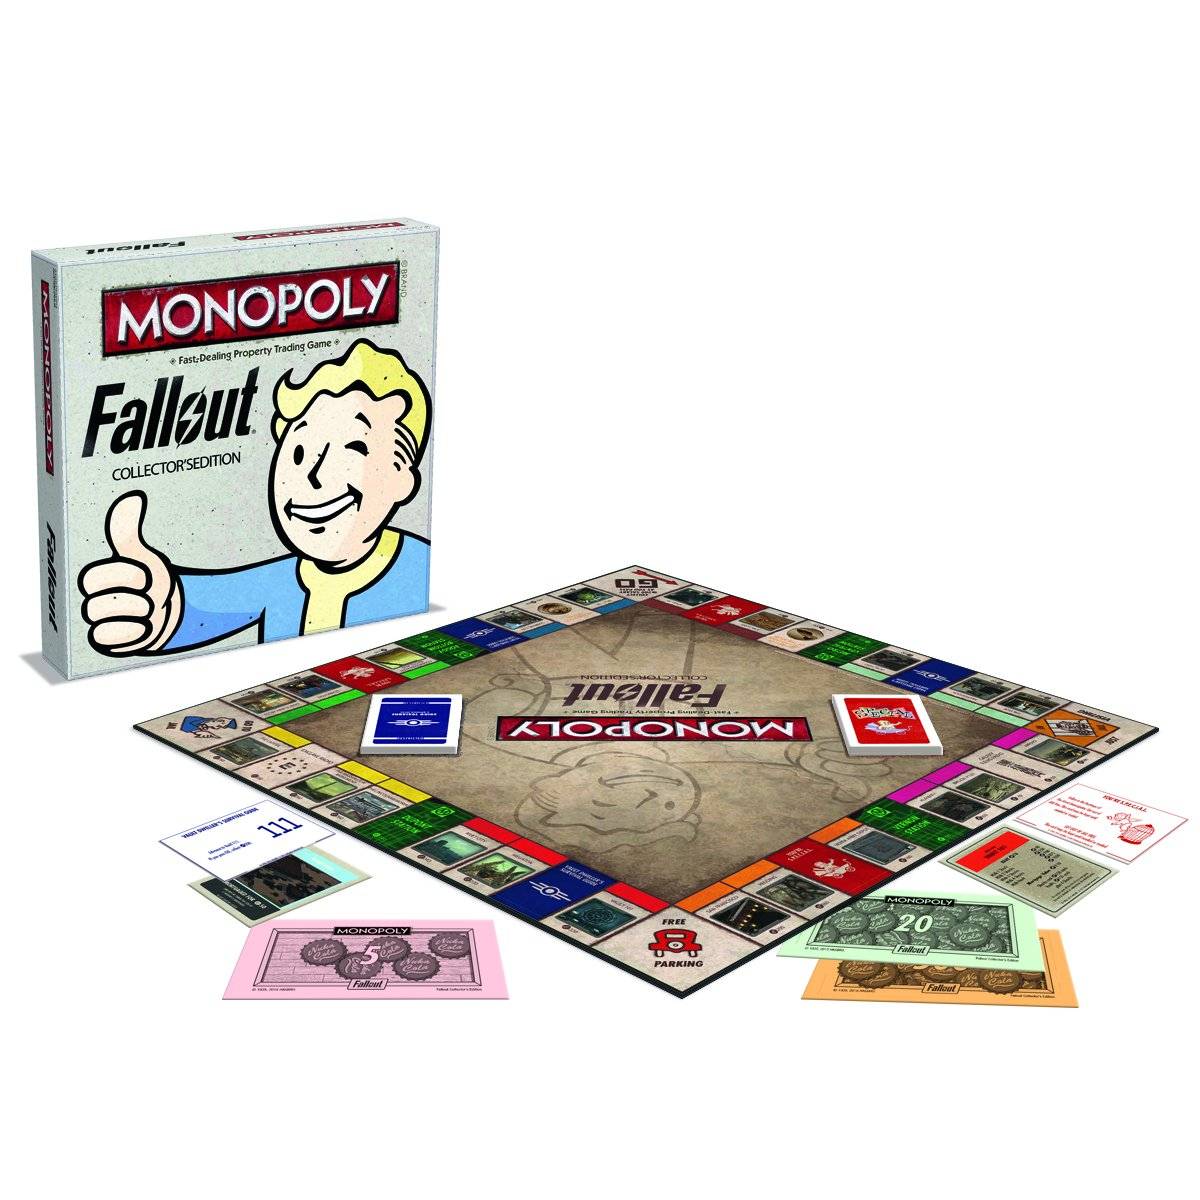 Fallout Monopoly Ingles*: Winning, Moves: Amazon.es: Juguetes y juegos